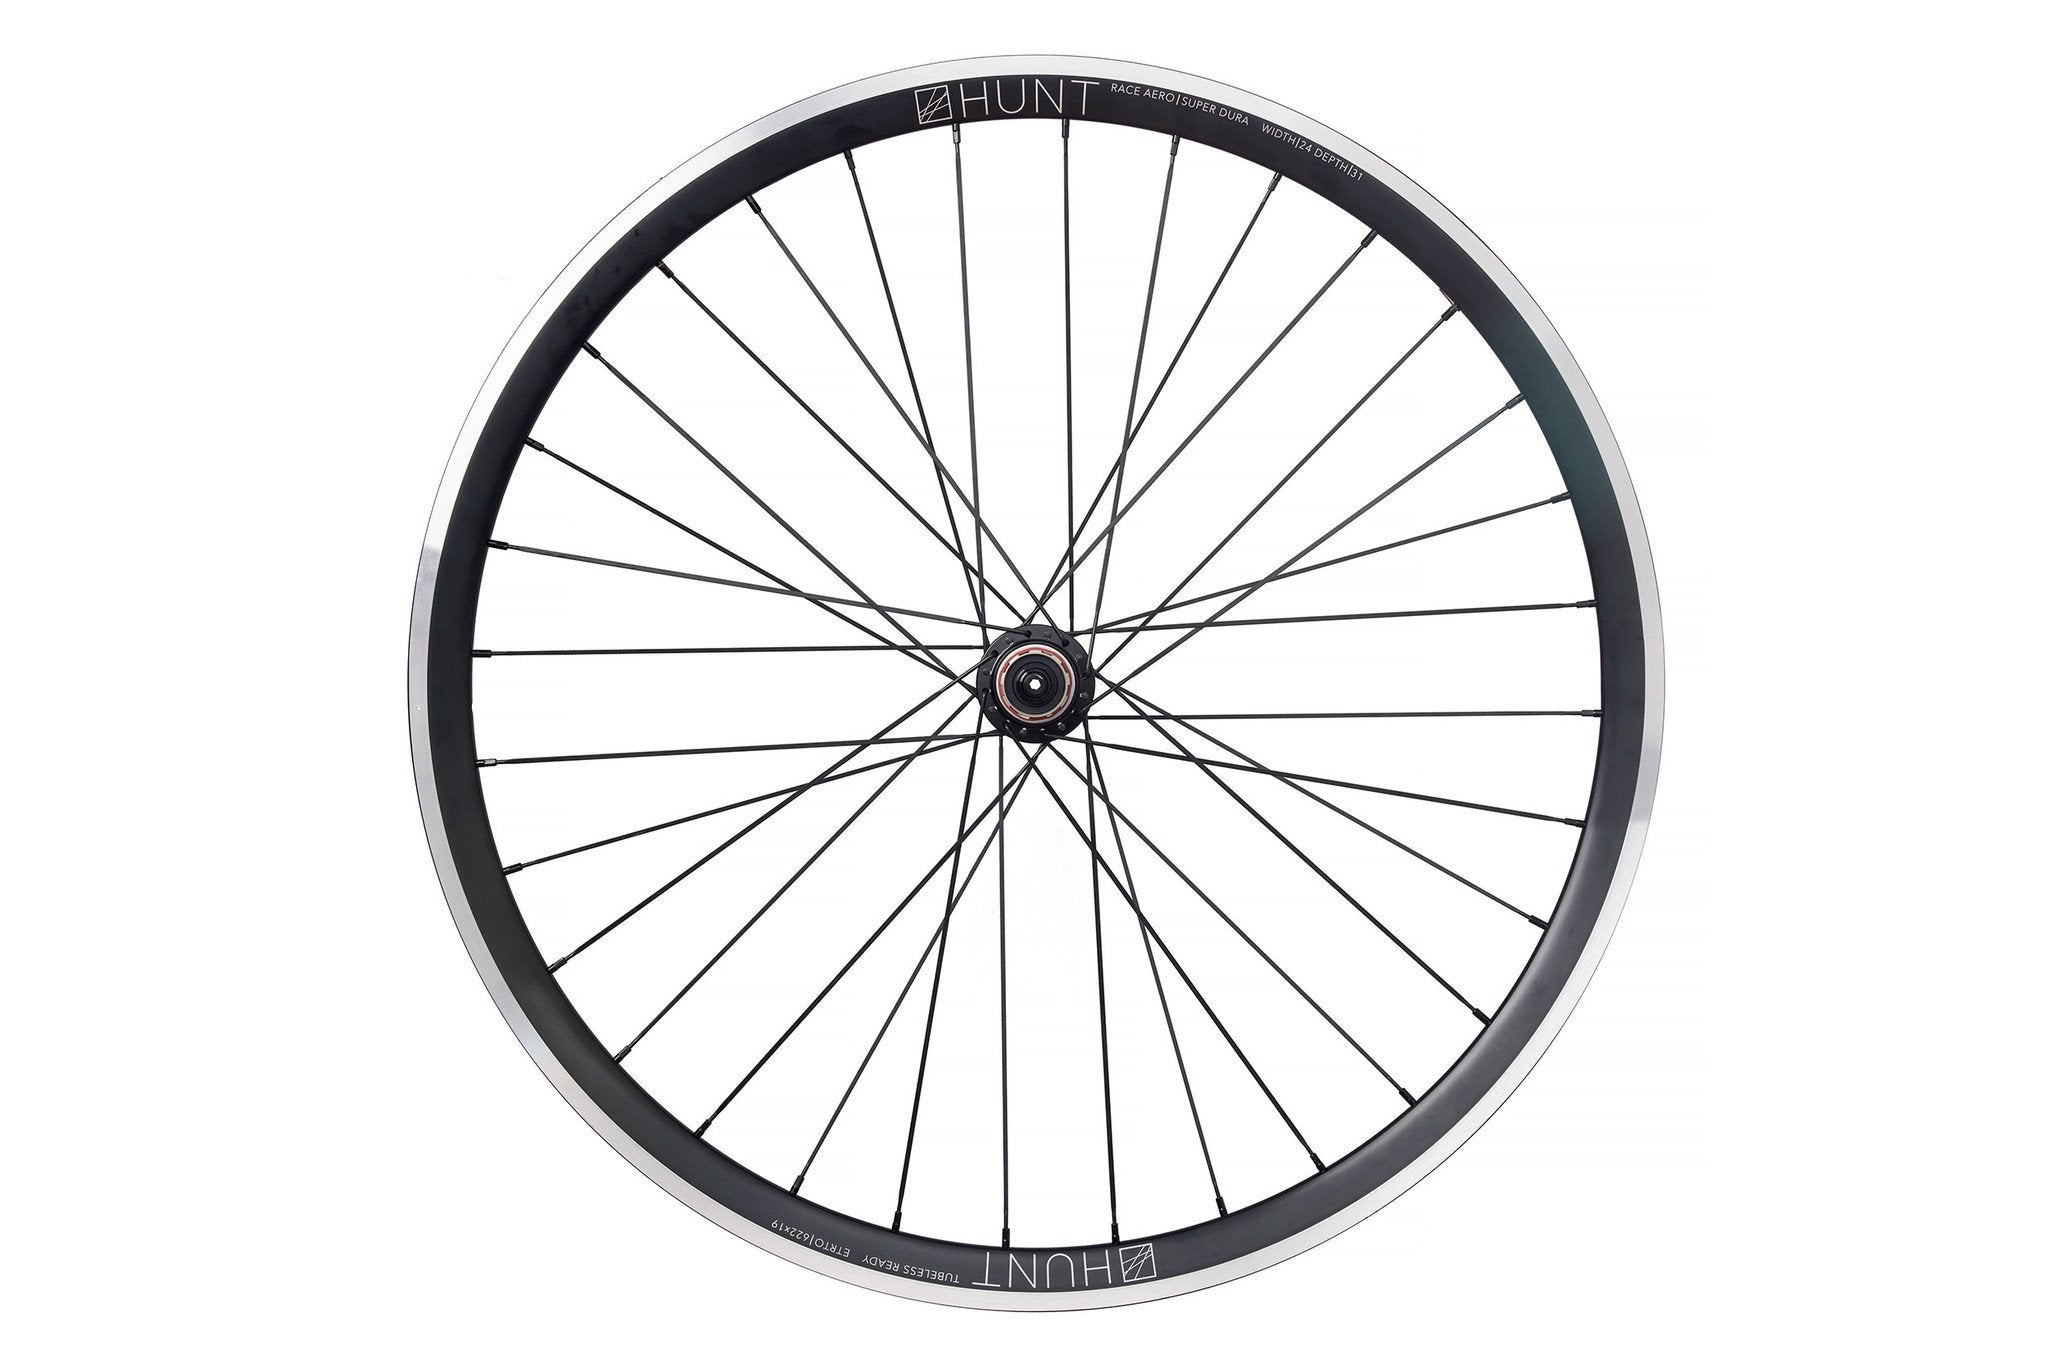 <h1>Rims</h1><i>The wheelset utilises our strongest rim material in the tried and tested profile from our Race Aero Wide wheels. We've added even more width (24mm external and 19 internal) and depth (31mm) for extra grip, comfort, low aero drag and low rolling resistance advantage. It's also important to note that widening the rim increases the air volume for any given tyre size thus creating better shock absorption which is especially useful for higher loading/more powerful riders.</i>